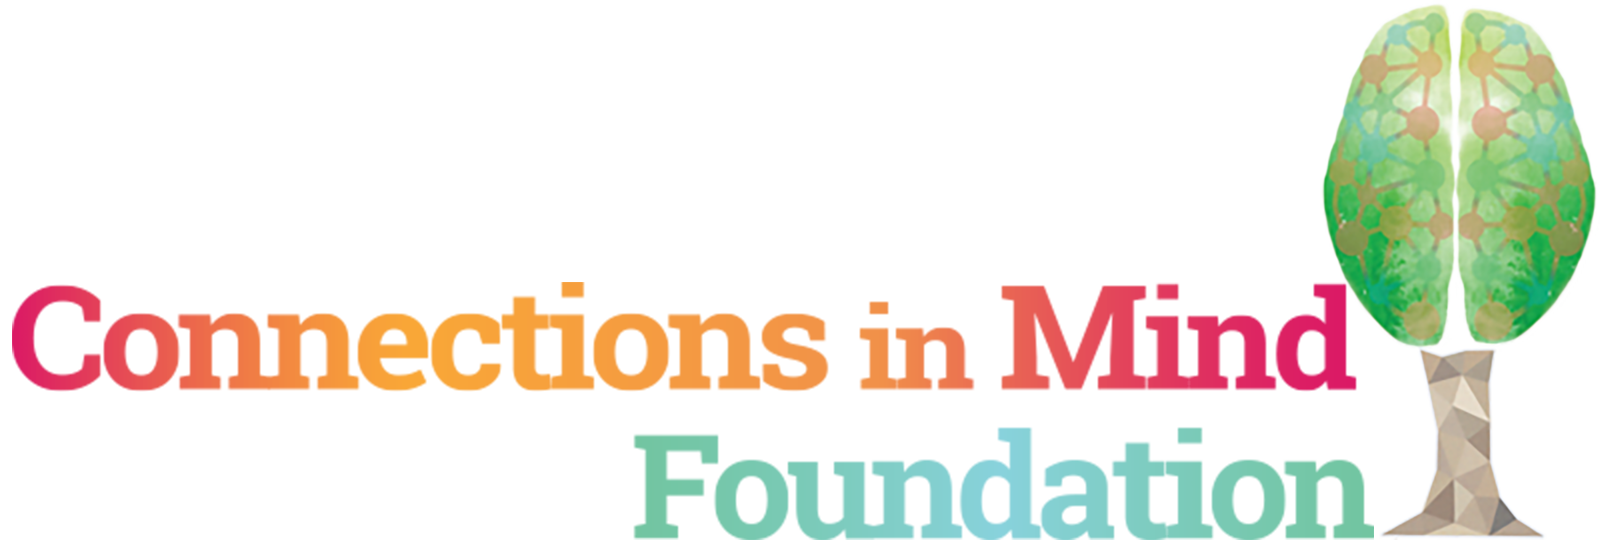 The Connections in Mind Foundation